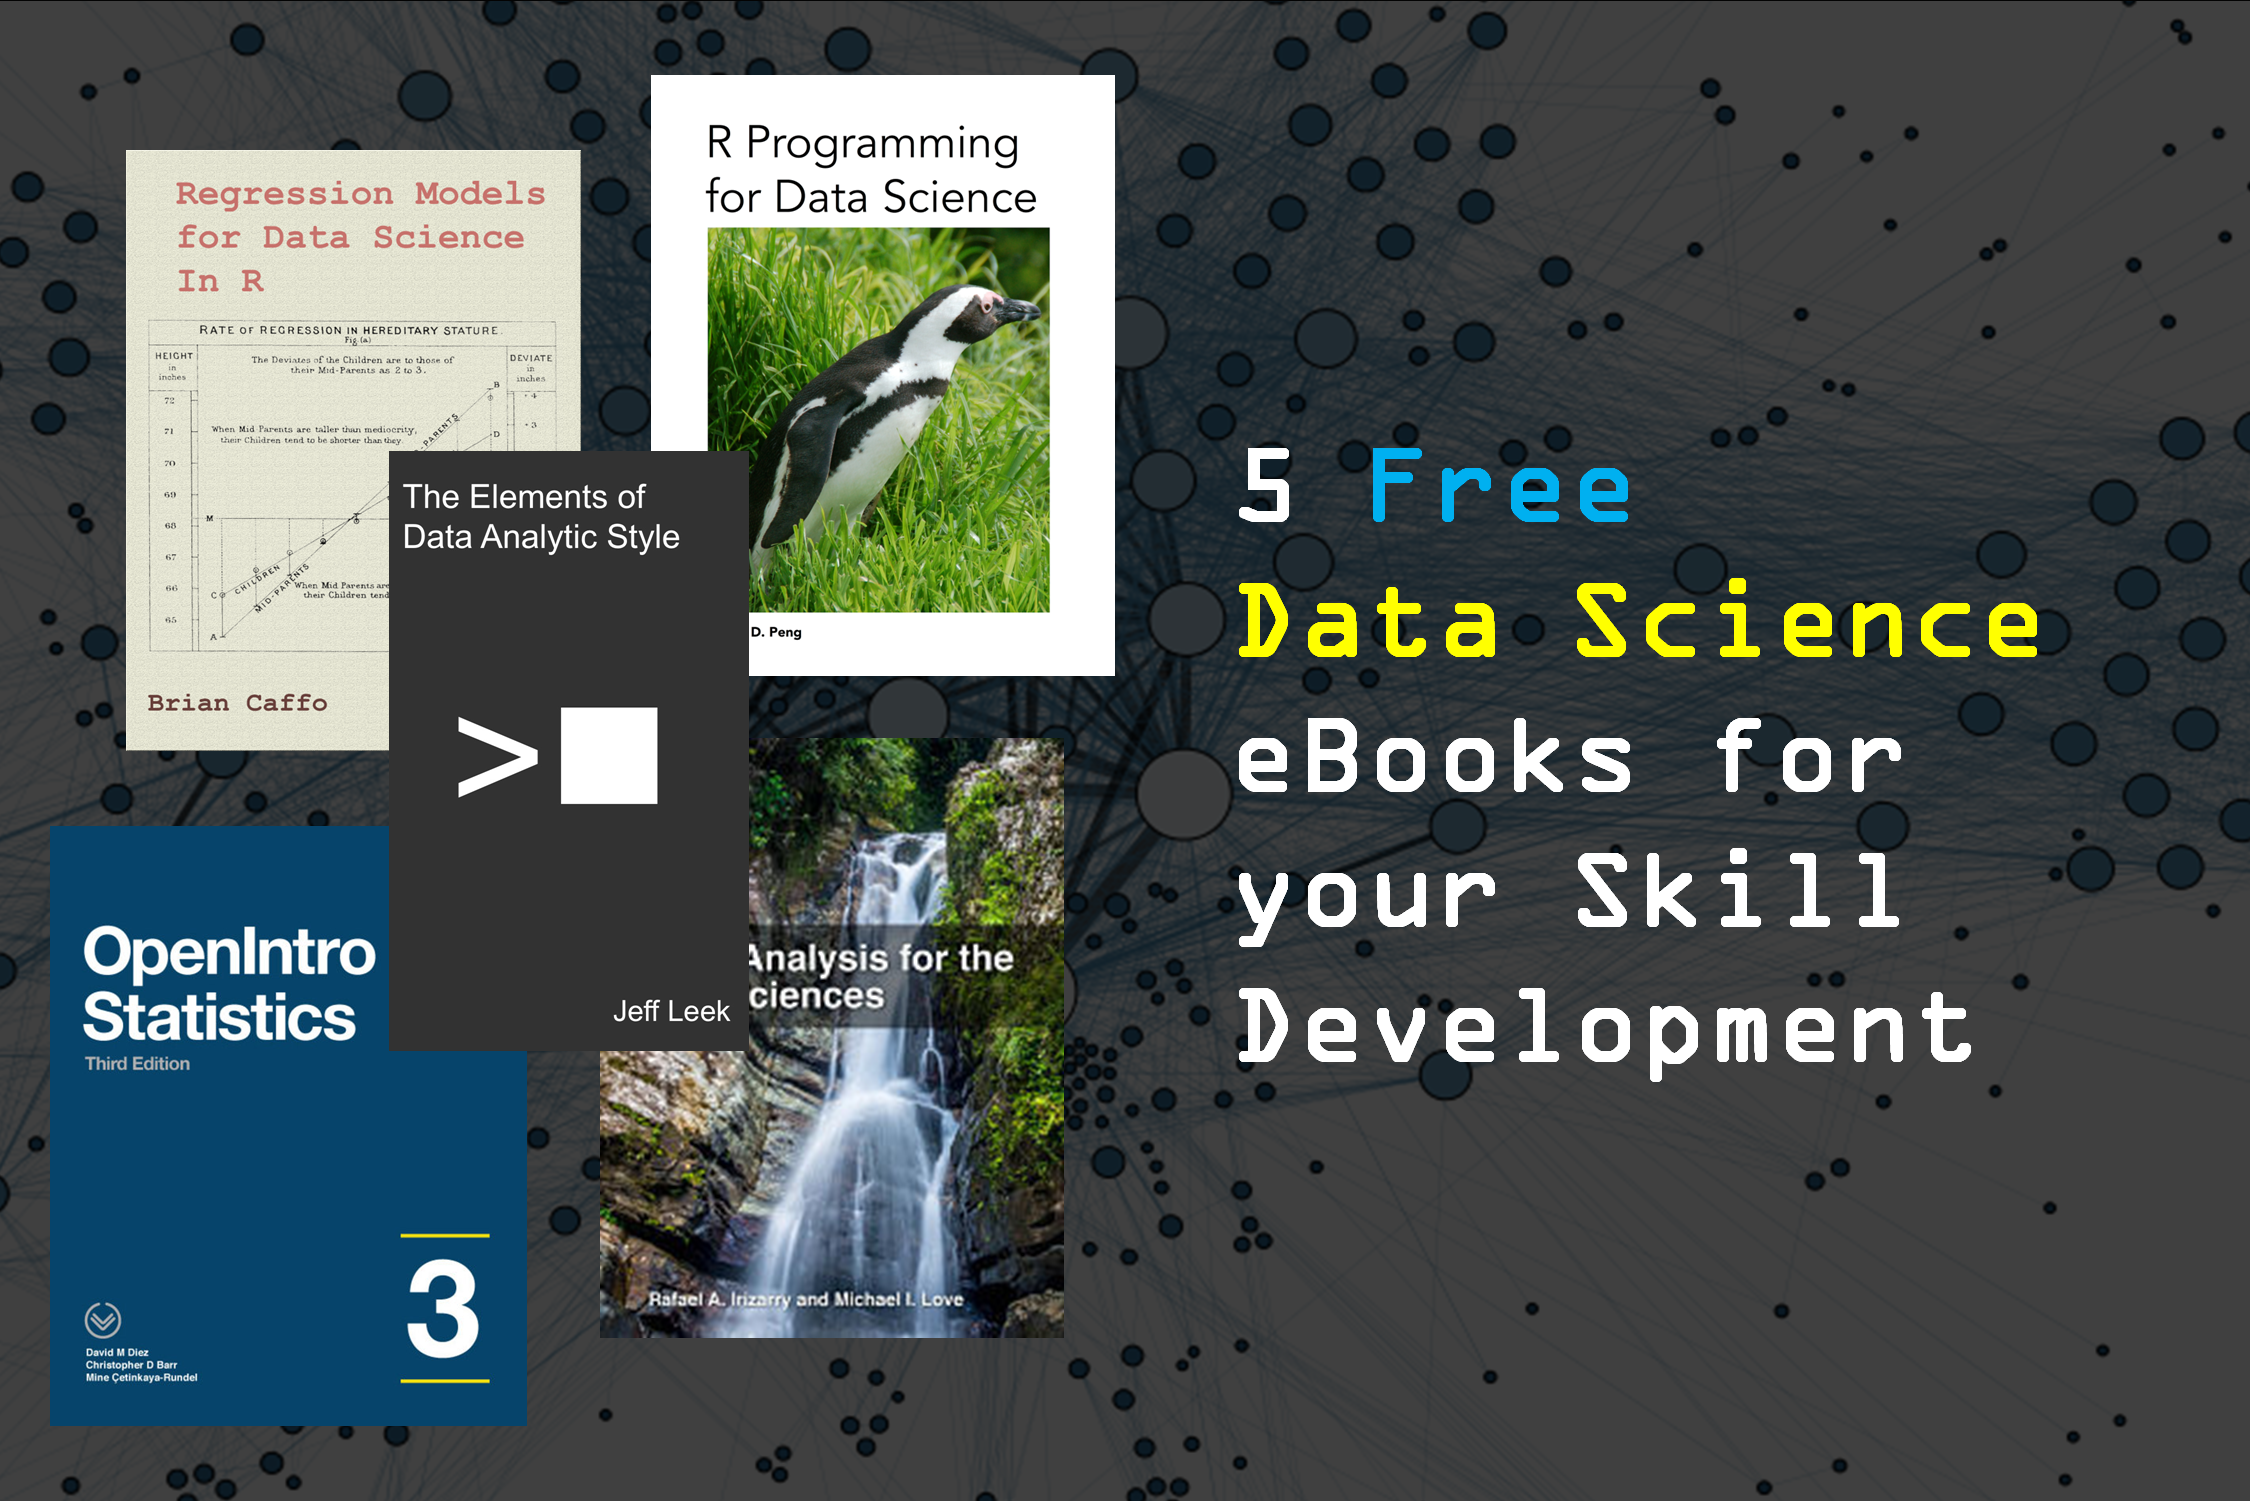 5 Free Data Science eBooks for your Skill Development - Image 1